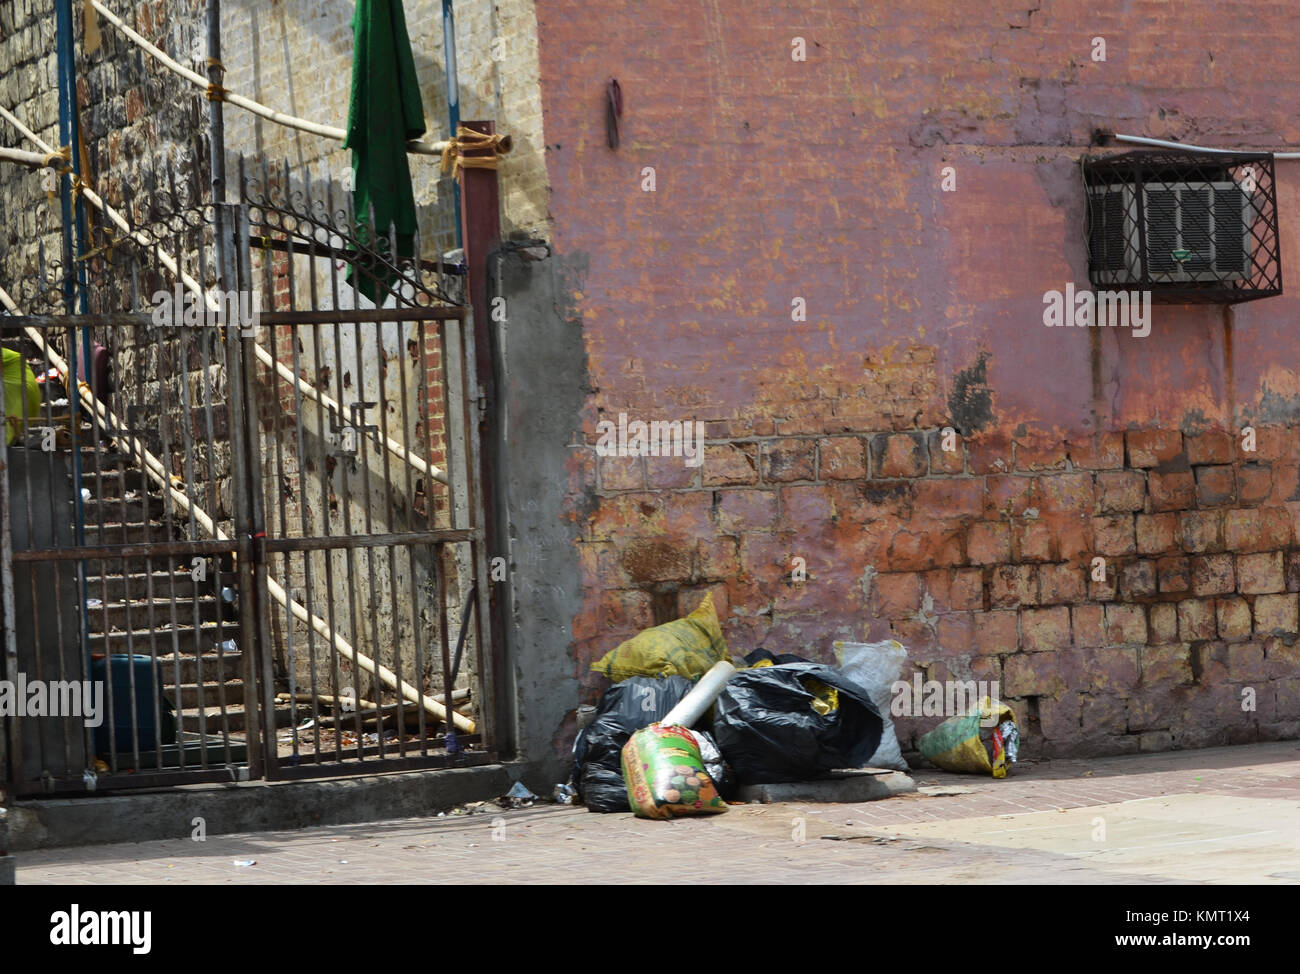 Rubbish in street with pink building taken New Delhi India - Stock Image